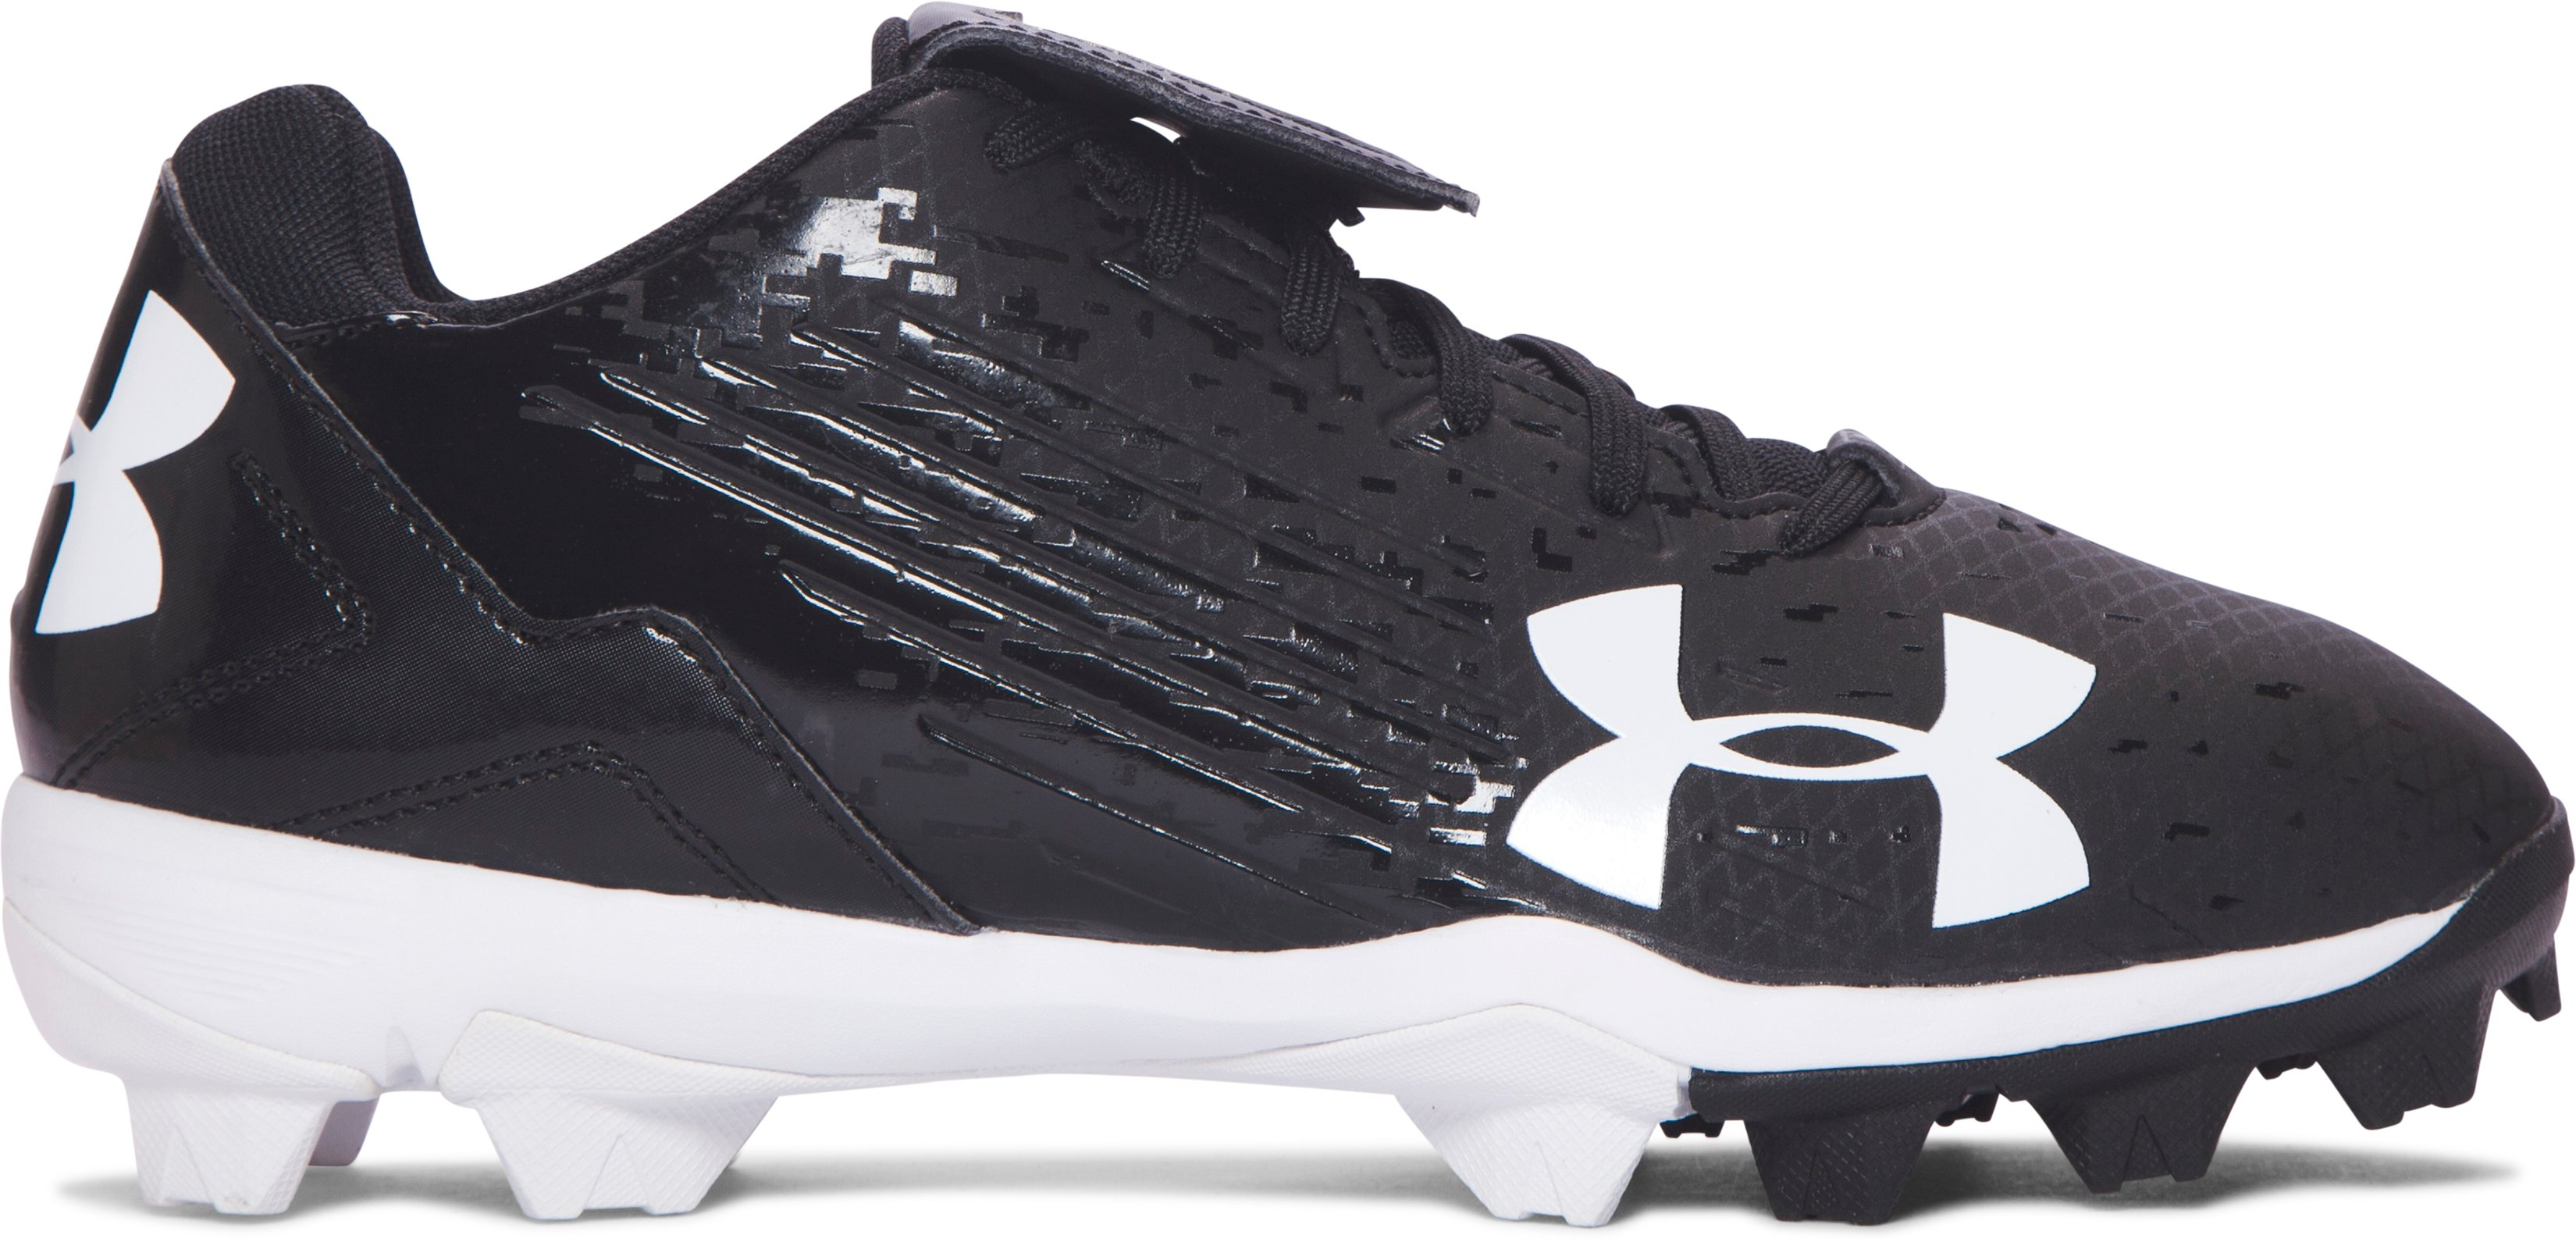 Boys' UA MLB Switch Low Jr. Baseball Cleats, Black